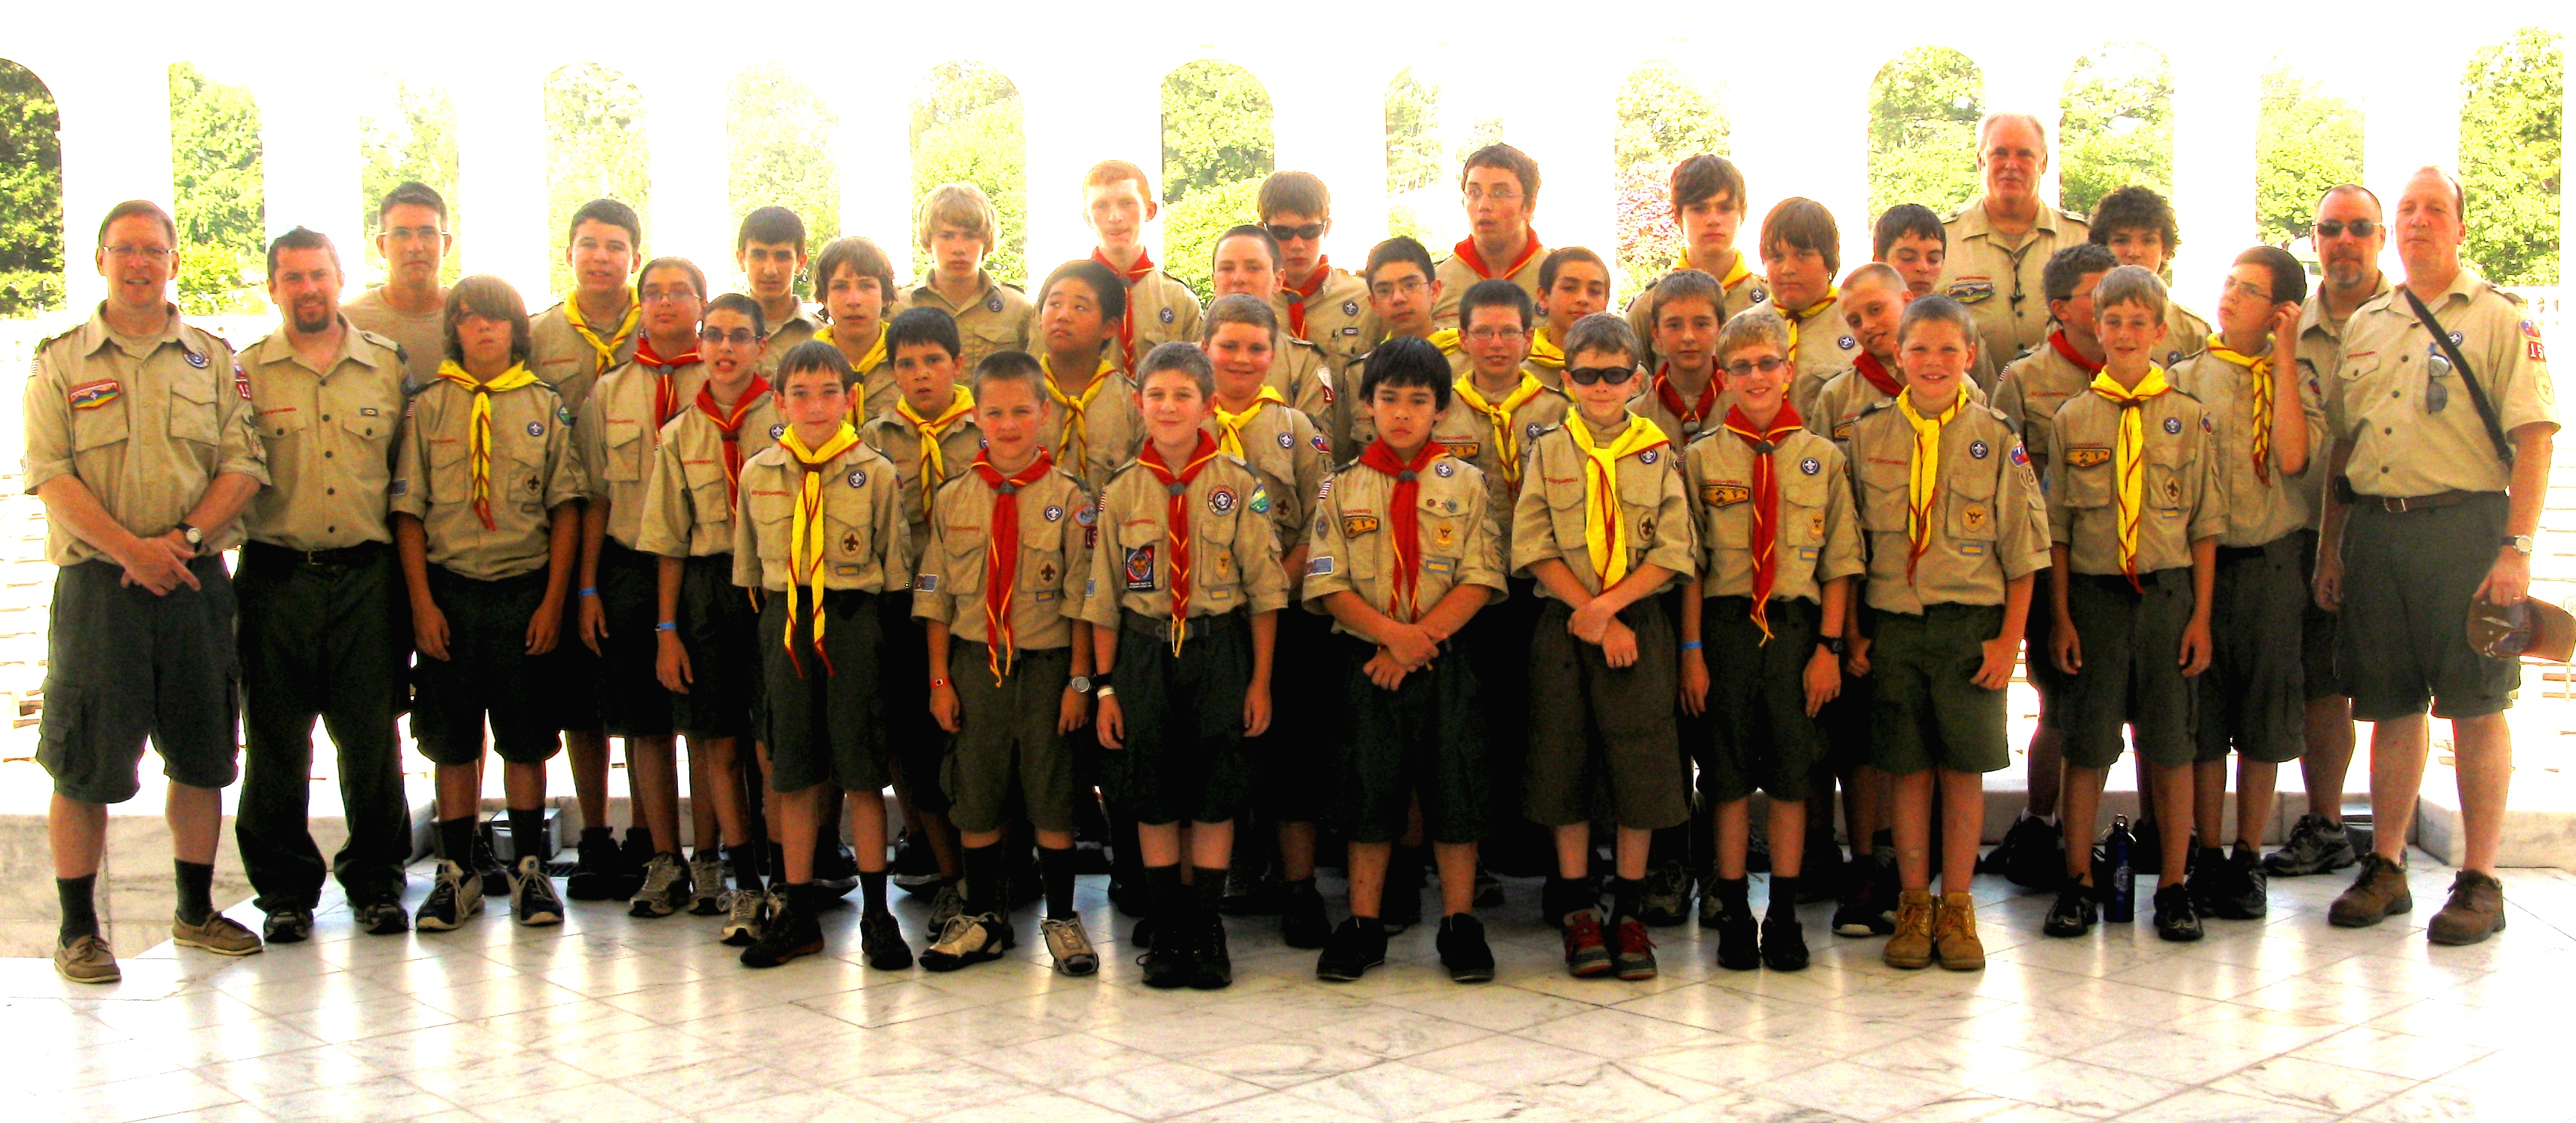 2011 Camp Picture